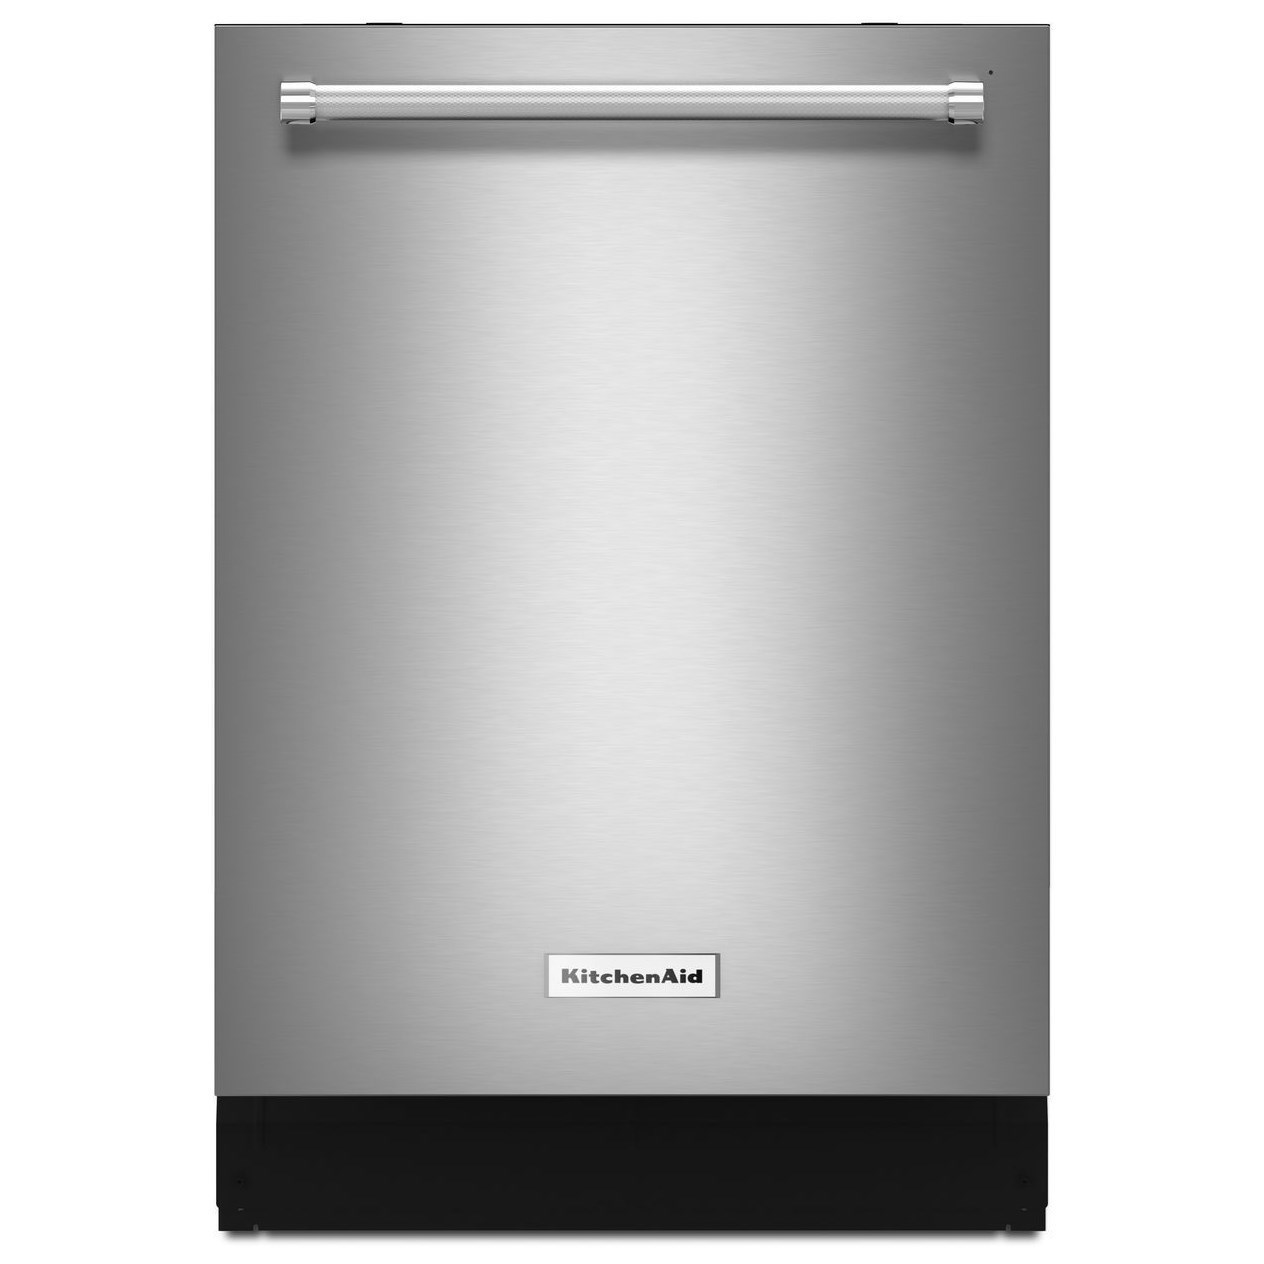 Kitchenaid Kdte204gps 46 Dba Dishwasher With Bottle Wash